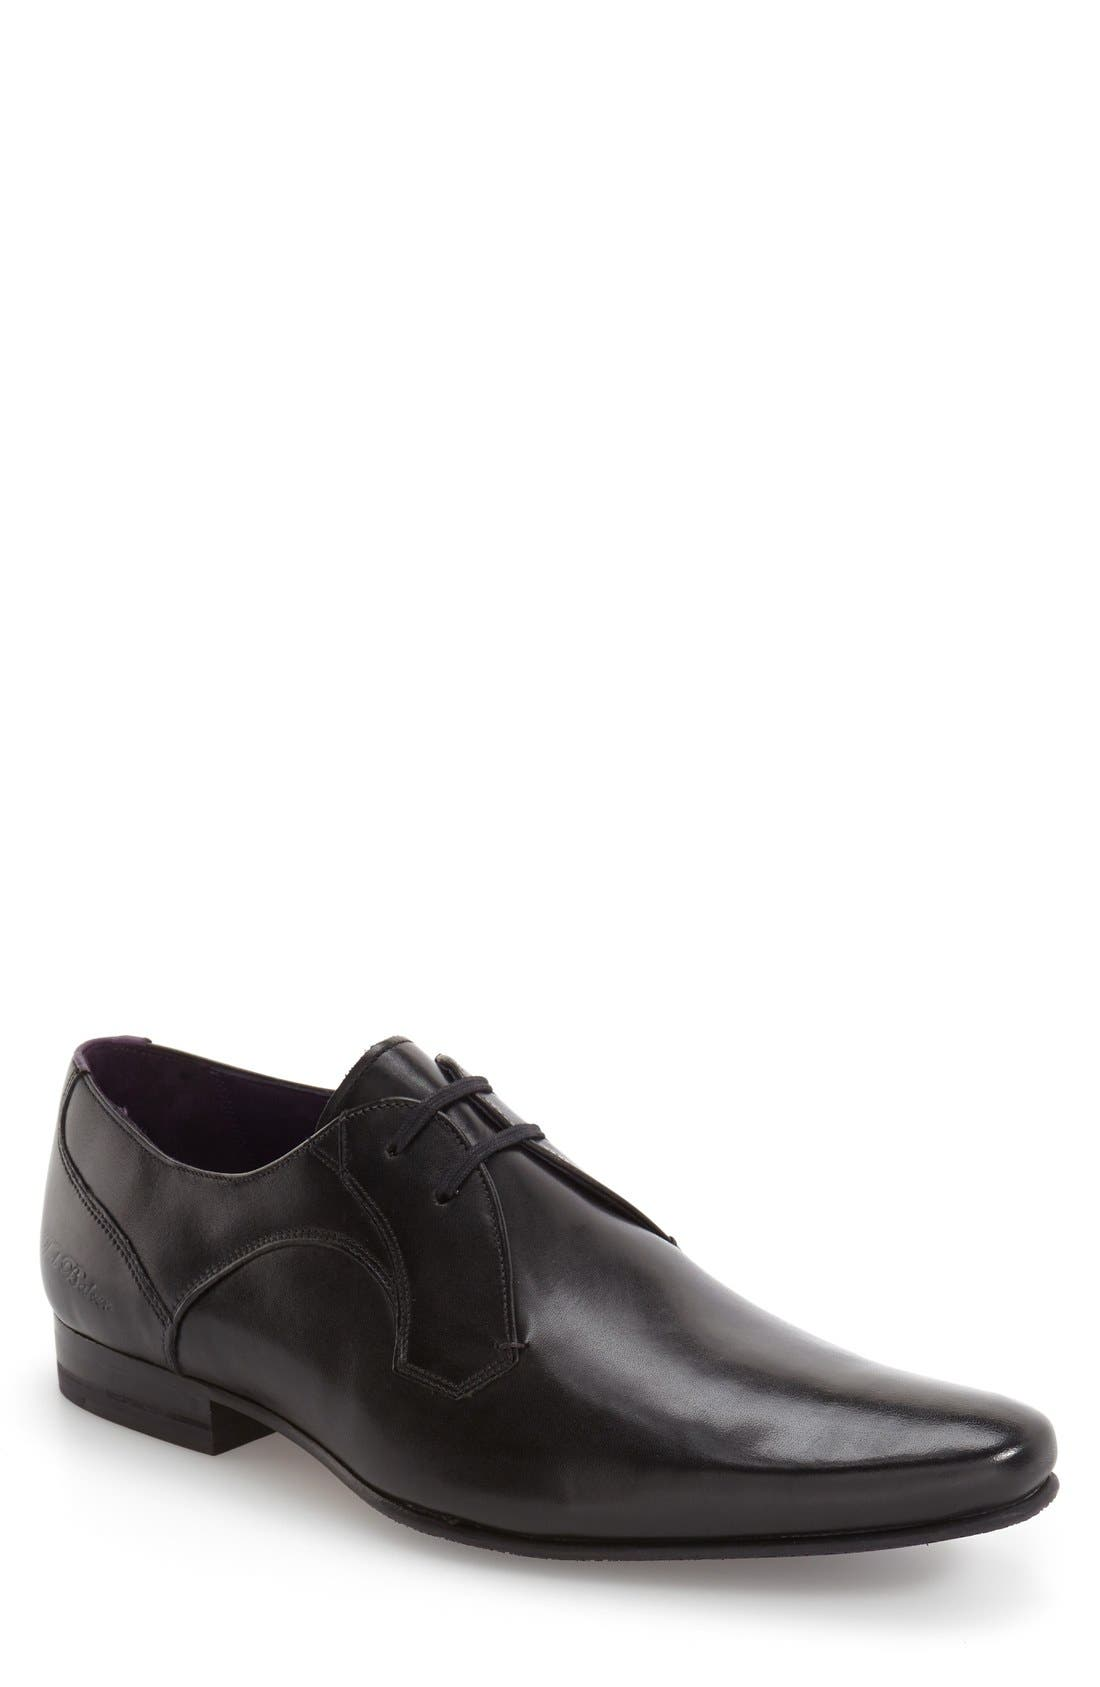 'Martt 2' Plain Toe Derby,                             Main thumbnail 1, color,                             001